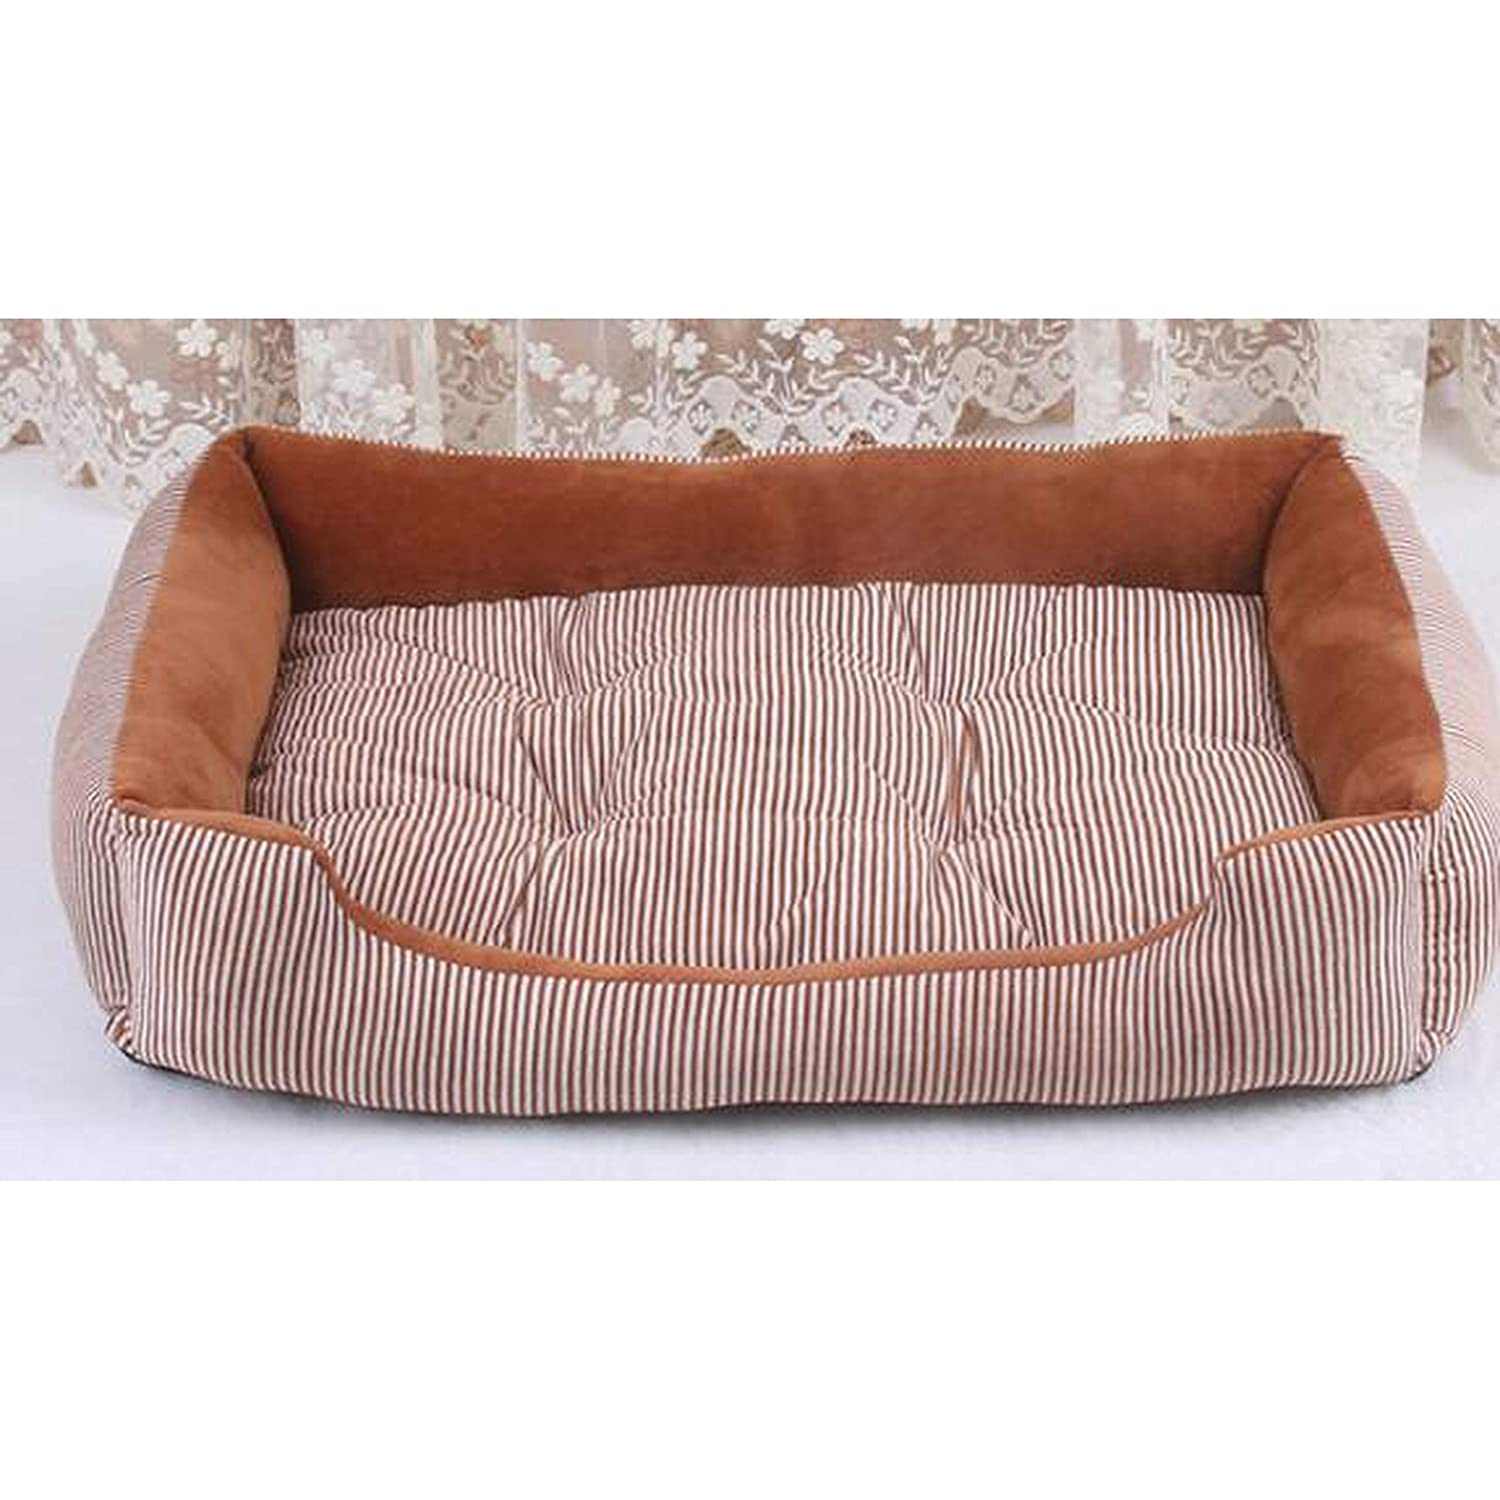 Light brown S 50x38x15cm light brown S 50x38x15cm Extra Large Pet Bed Sofas for Cat Dogs Husky Bulldog Removable Sleeping Cushion Mattress Take Out Small Large Dog House,Light Brown,S 50X38X15Cm